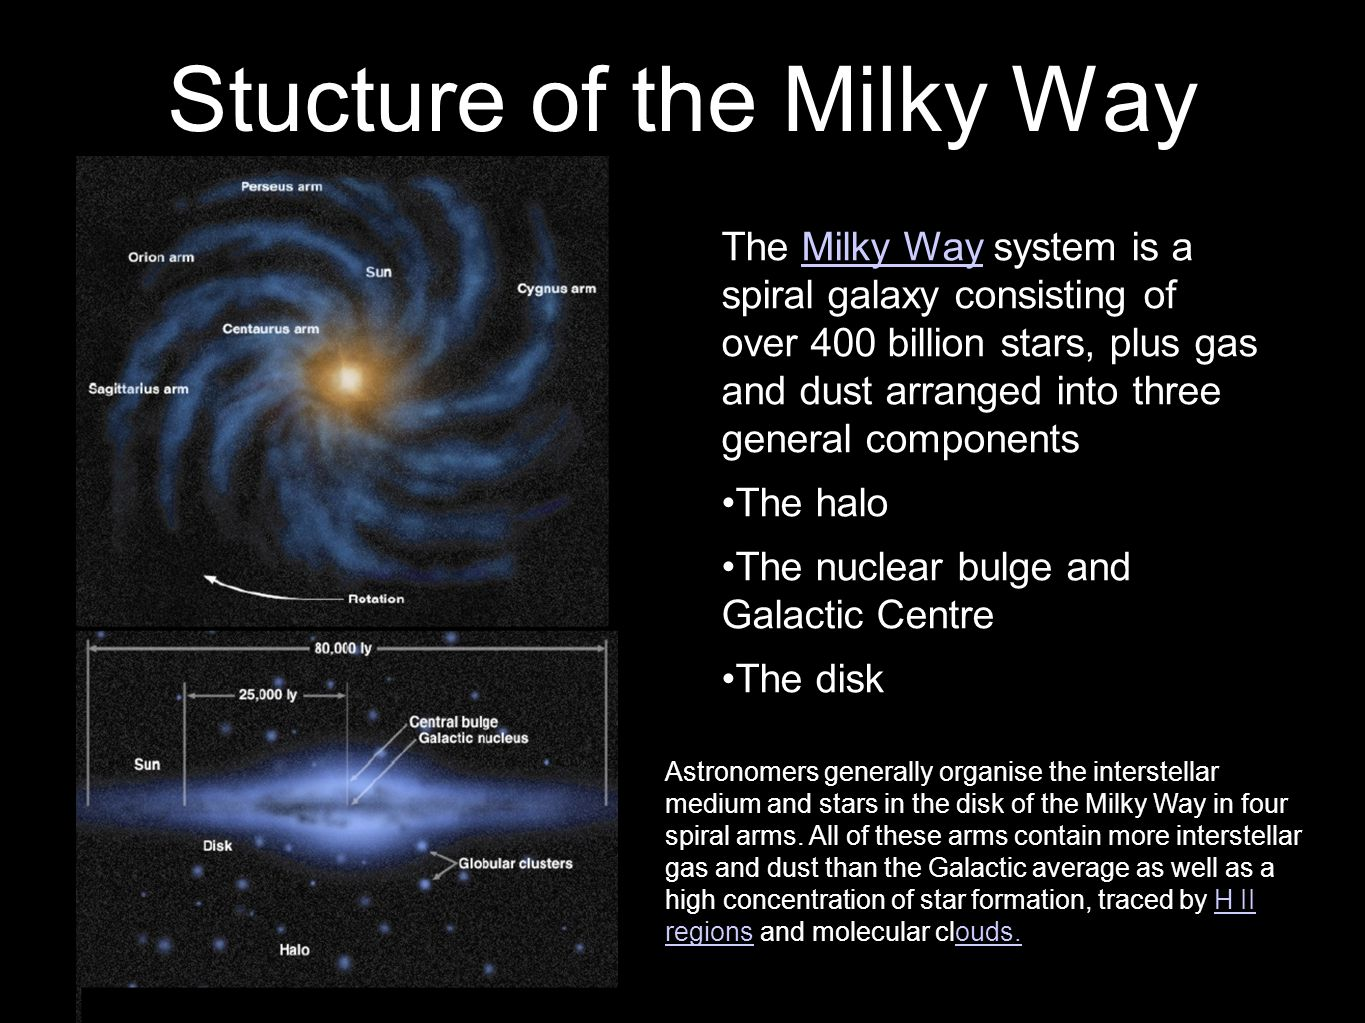 Supermassive black holes The accretion disk weighs 100,000 times as much as our Sun.